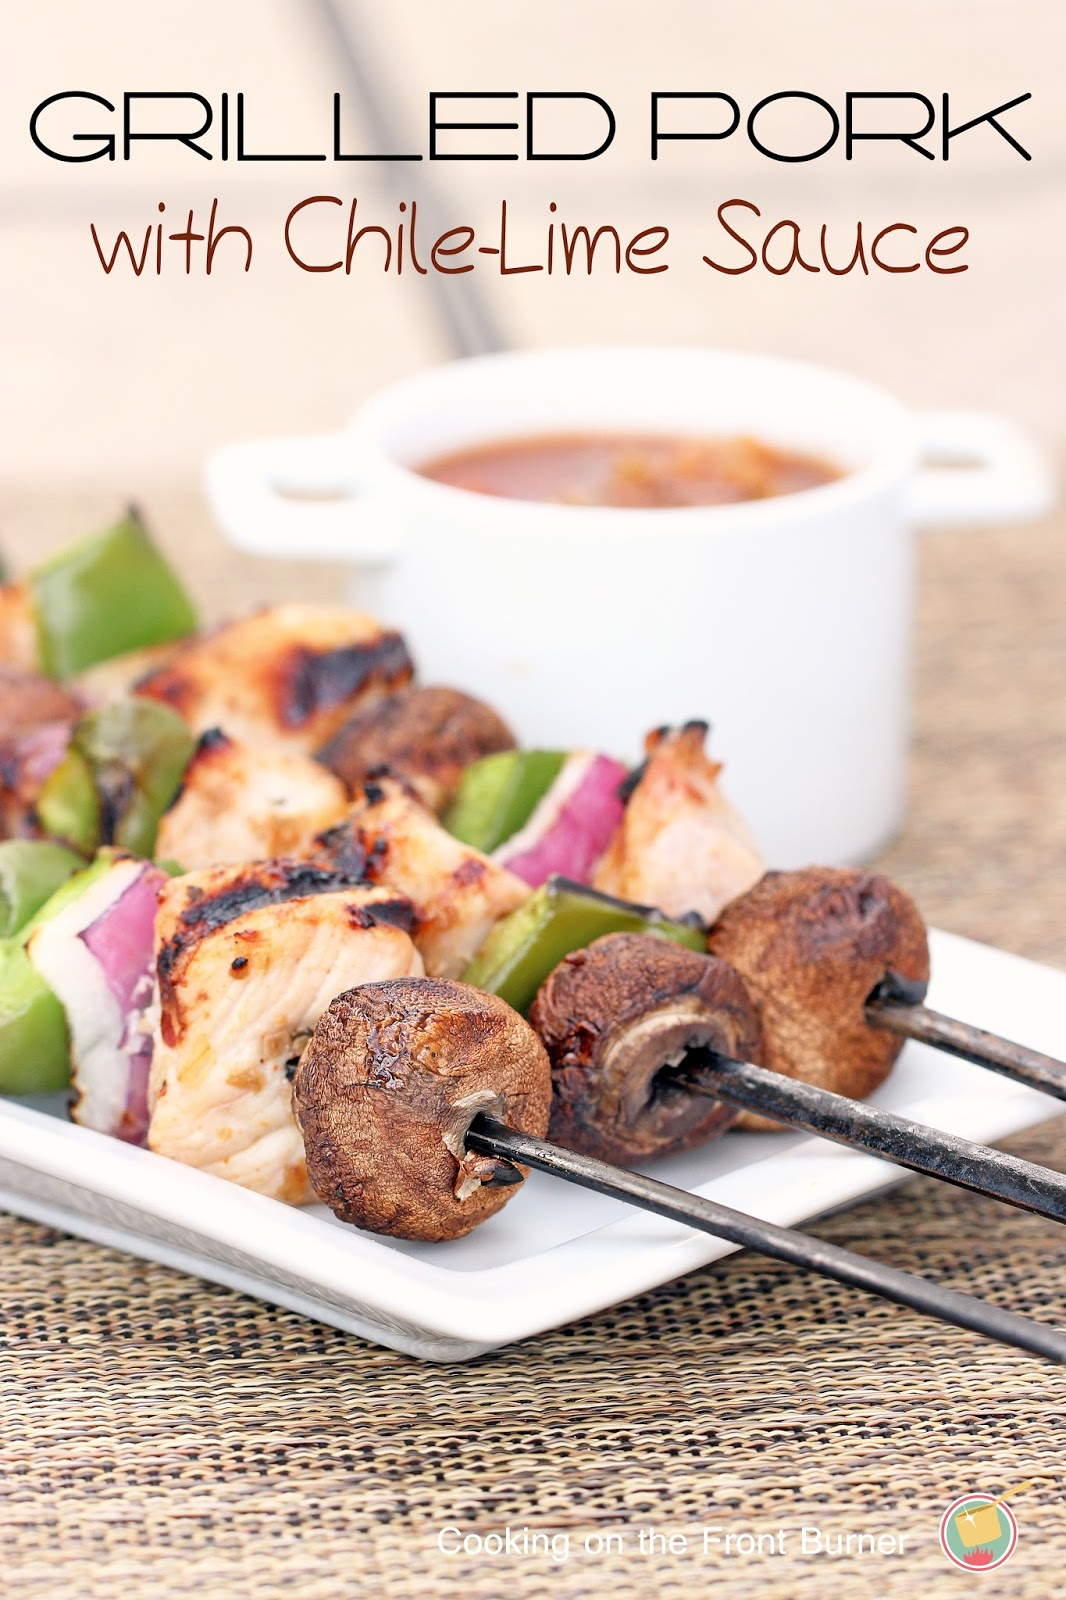 Grilled-Pork-with-Chile-Lime-Sauce-20